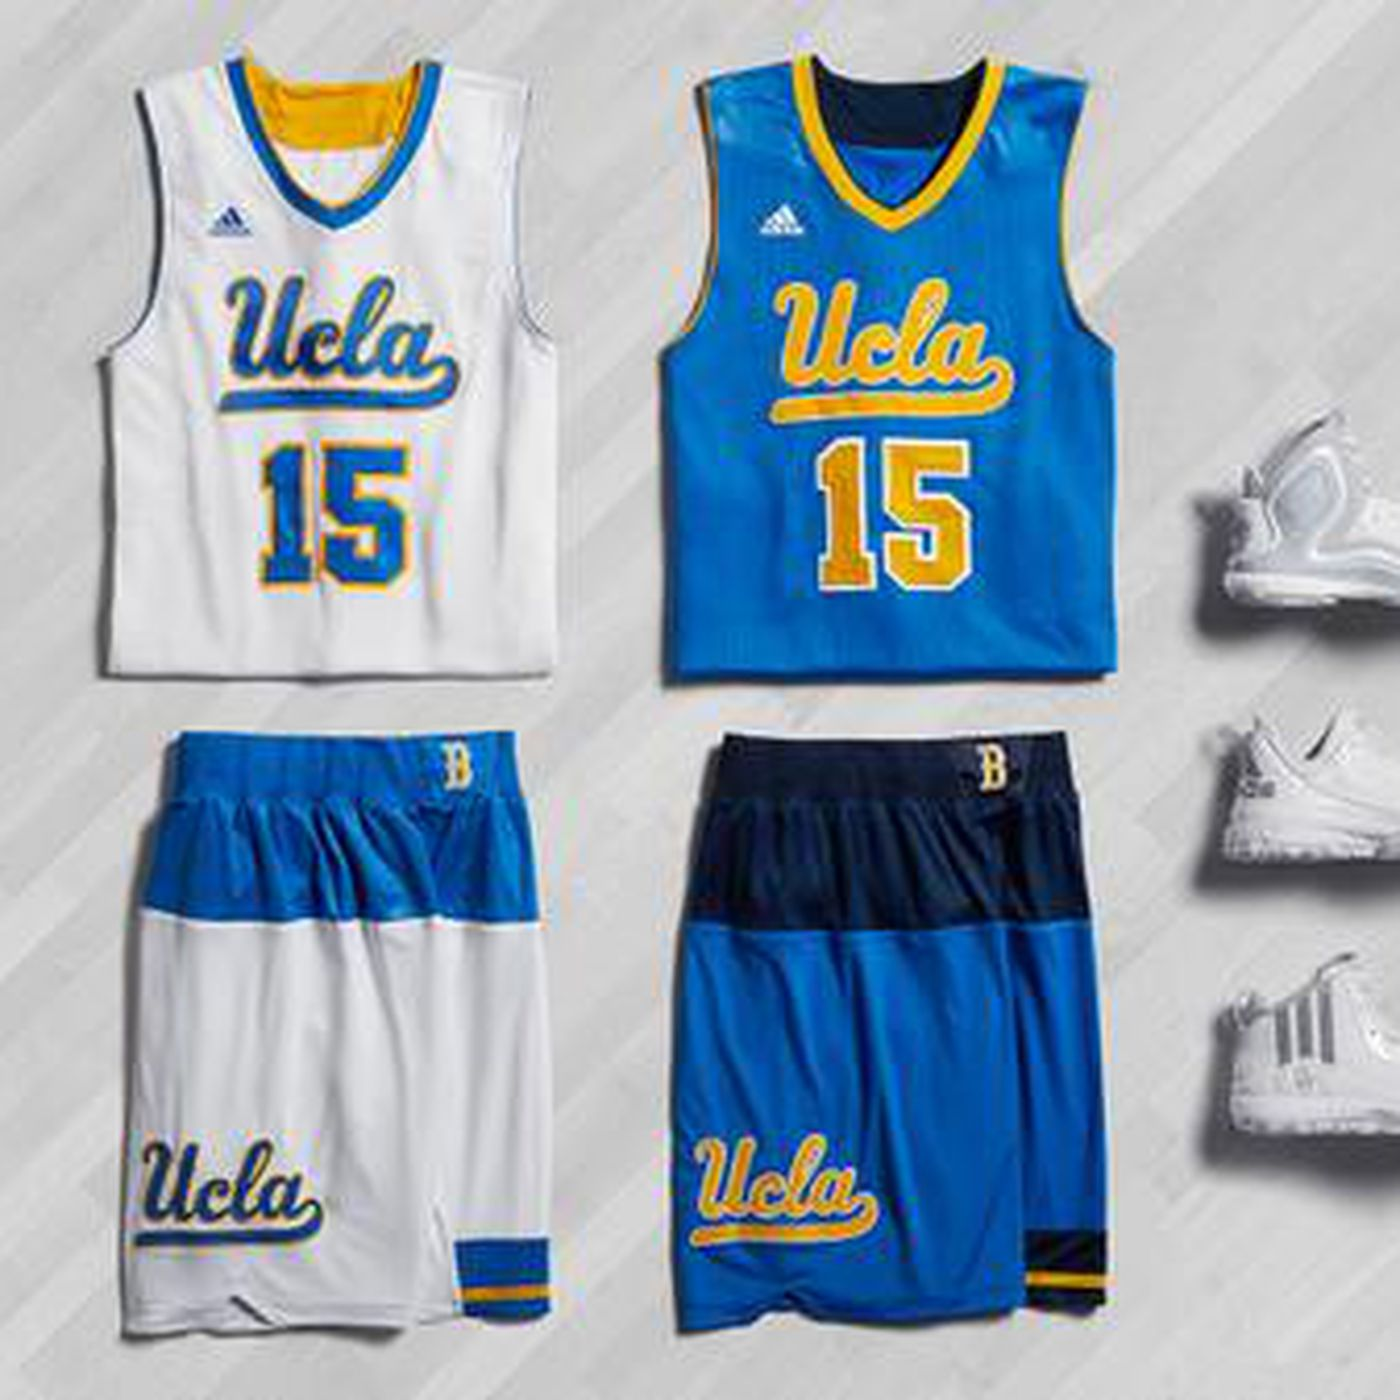 separation shoes 987d9 07e6f UCLA unveils new alternate basketball uniforms - Bruins Nation